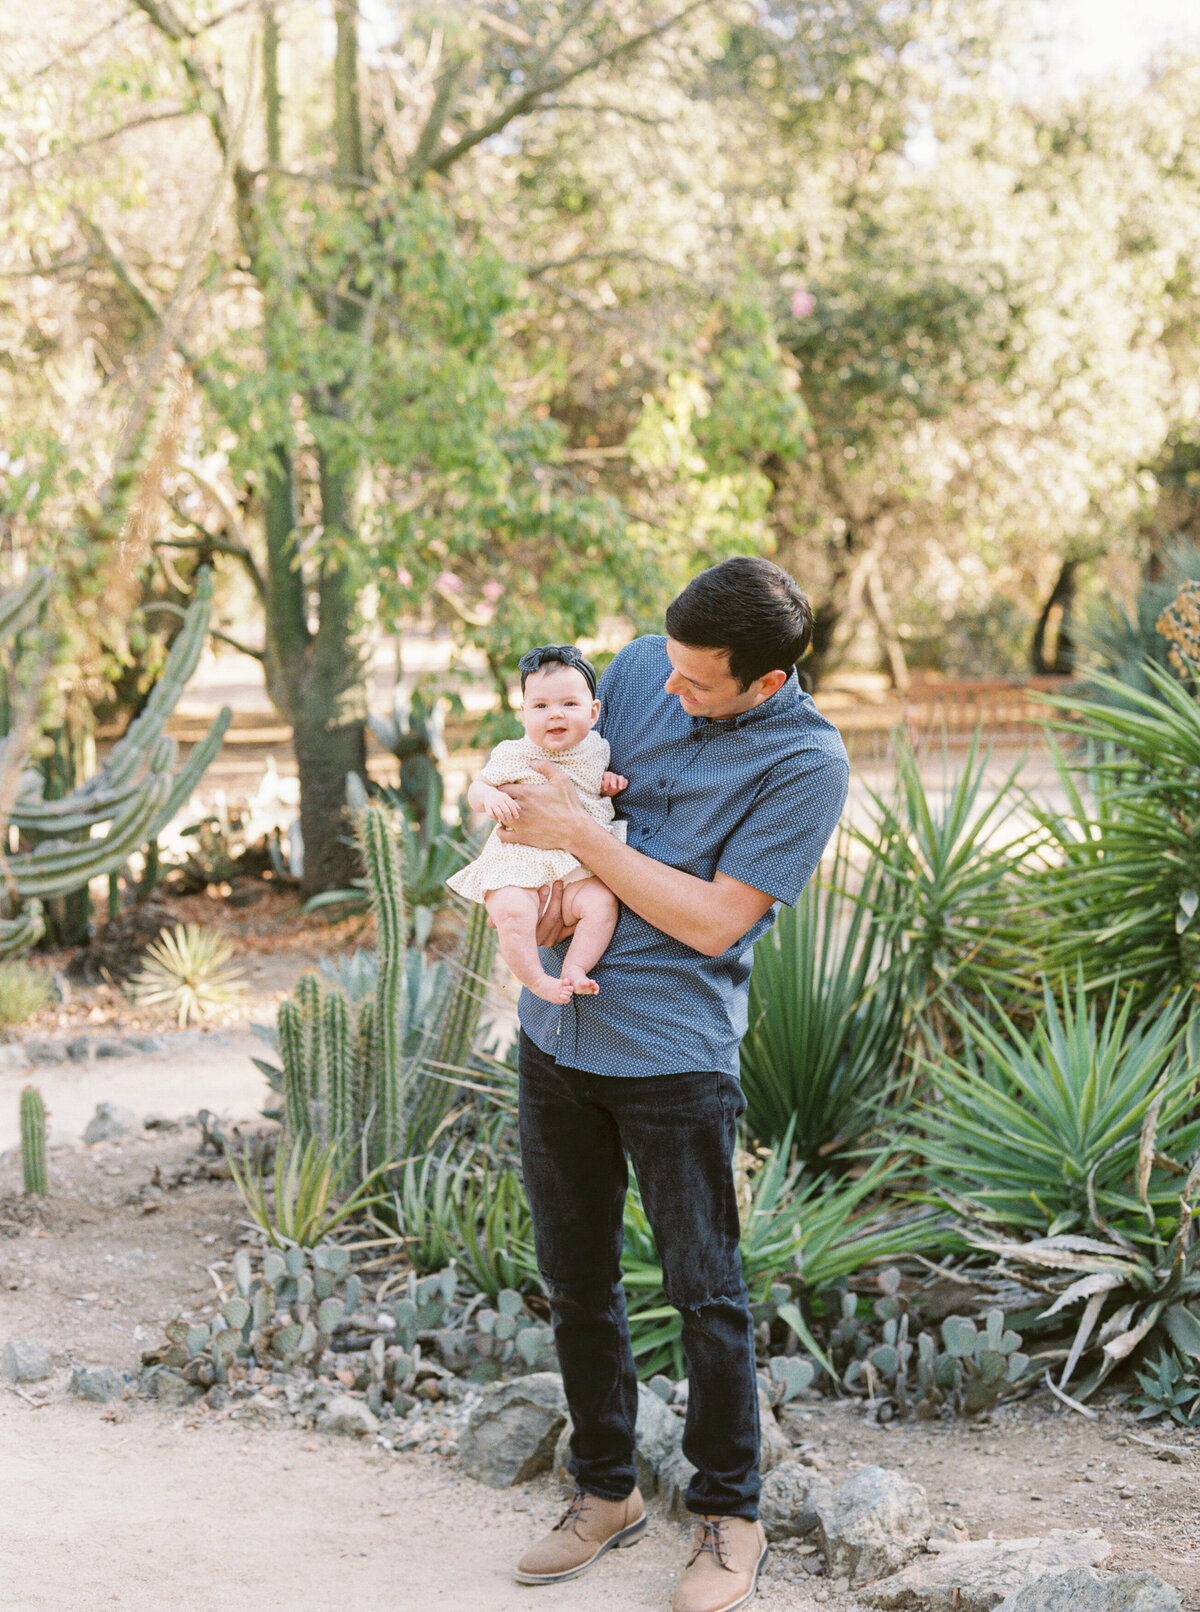 Olivia Marshall Photography- Cactus Desert Garden Family Photos-9